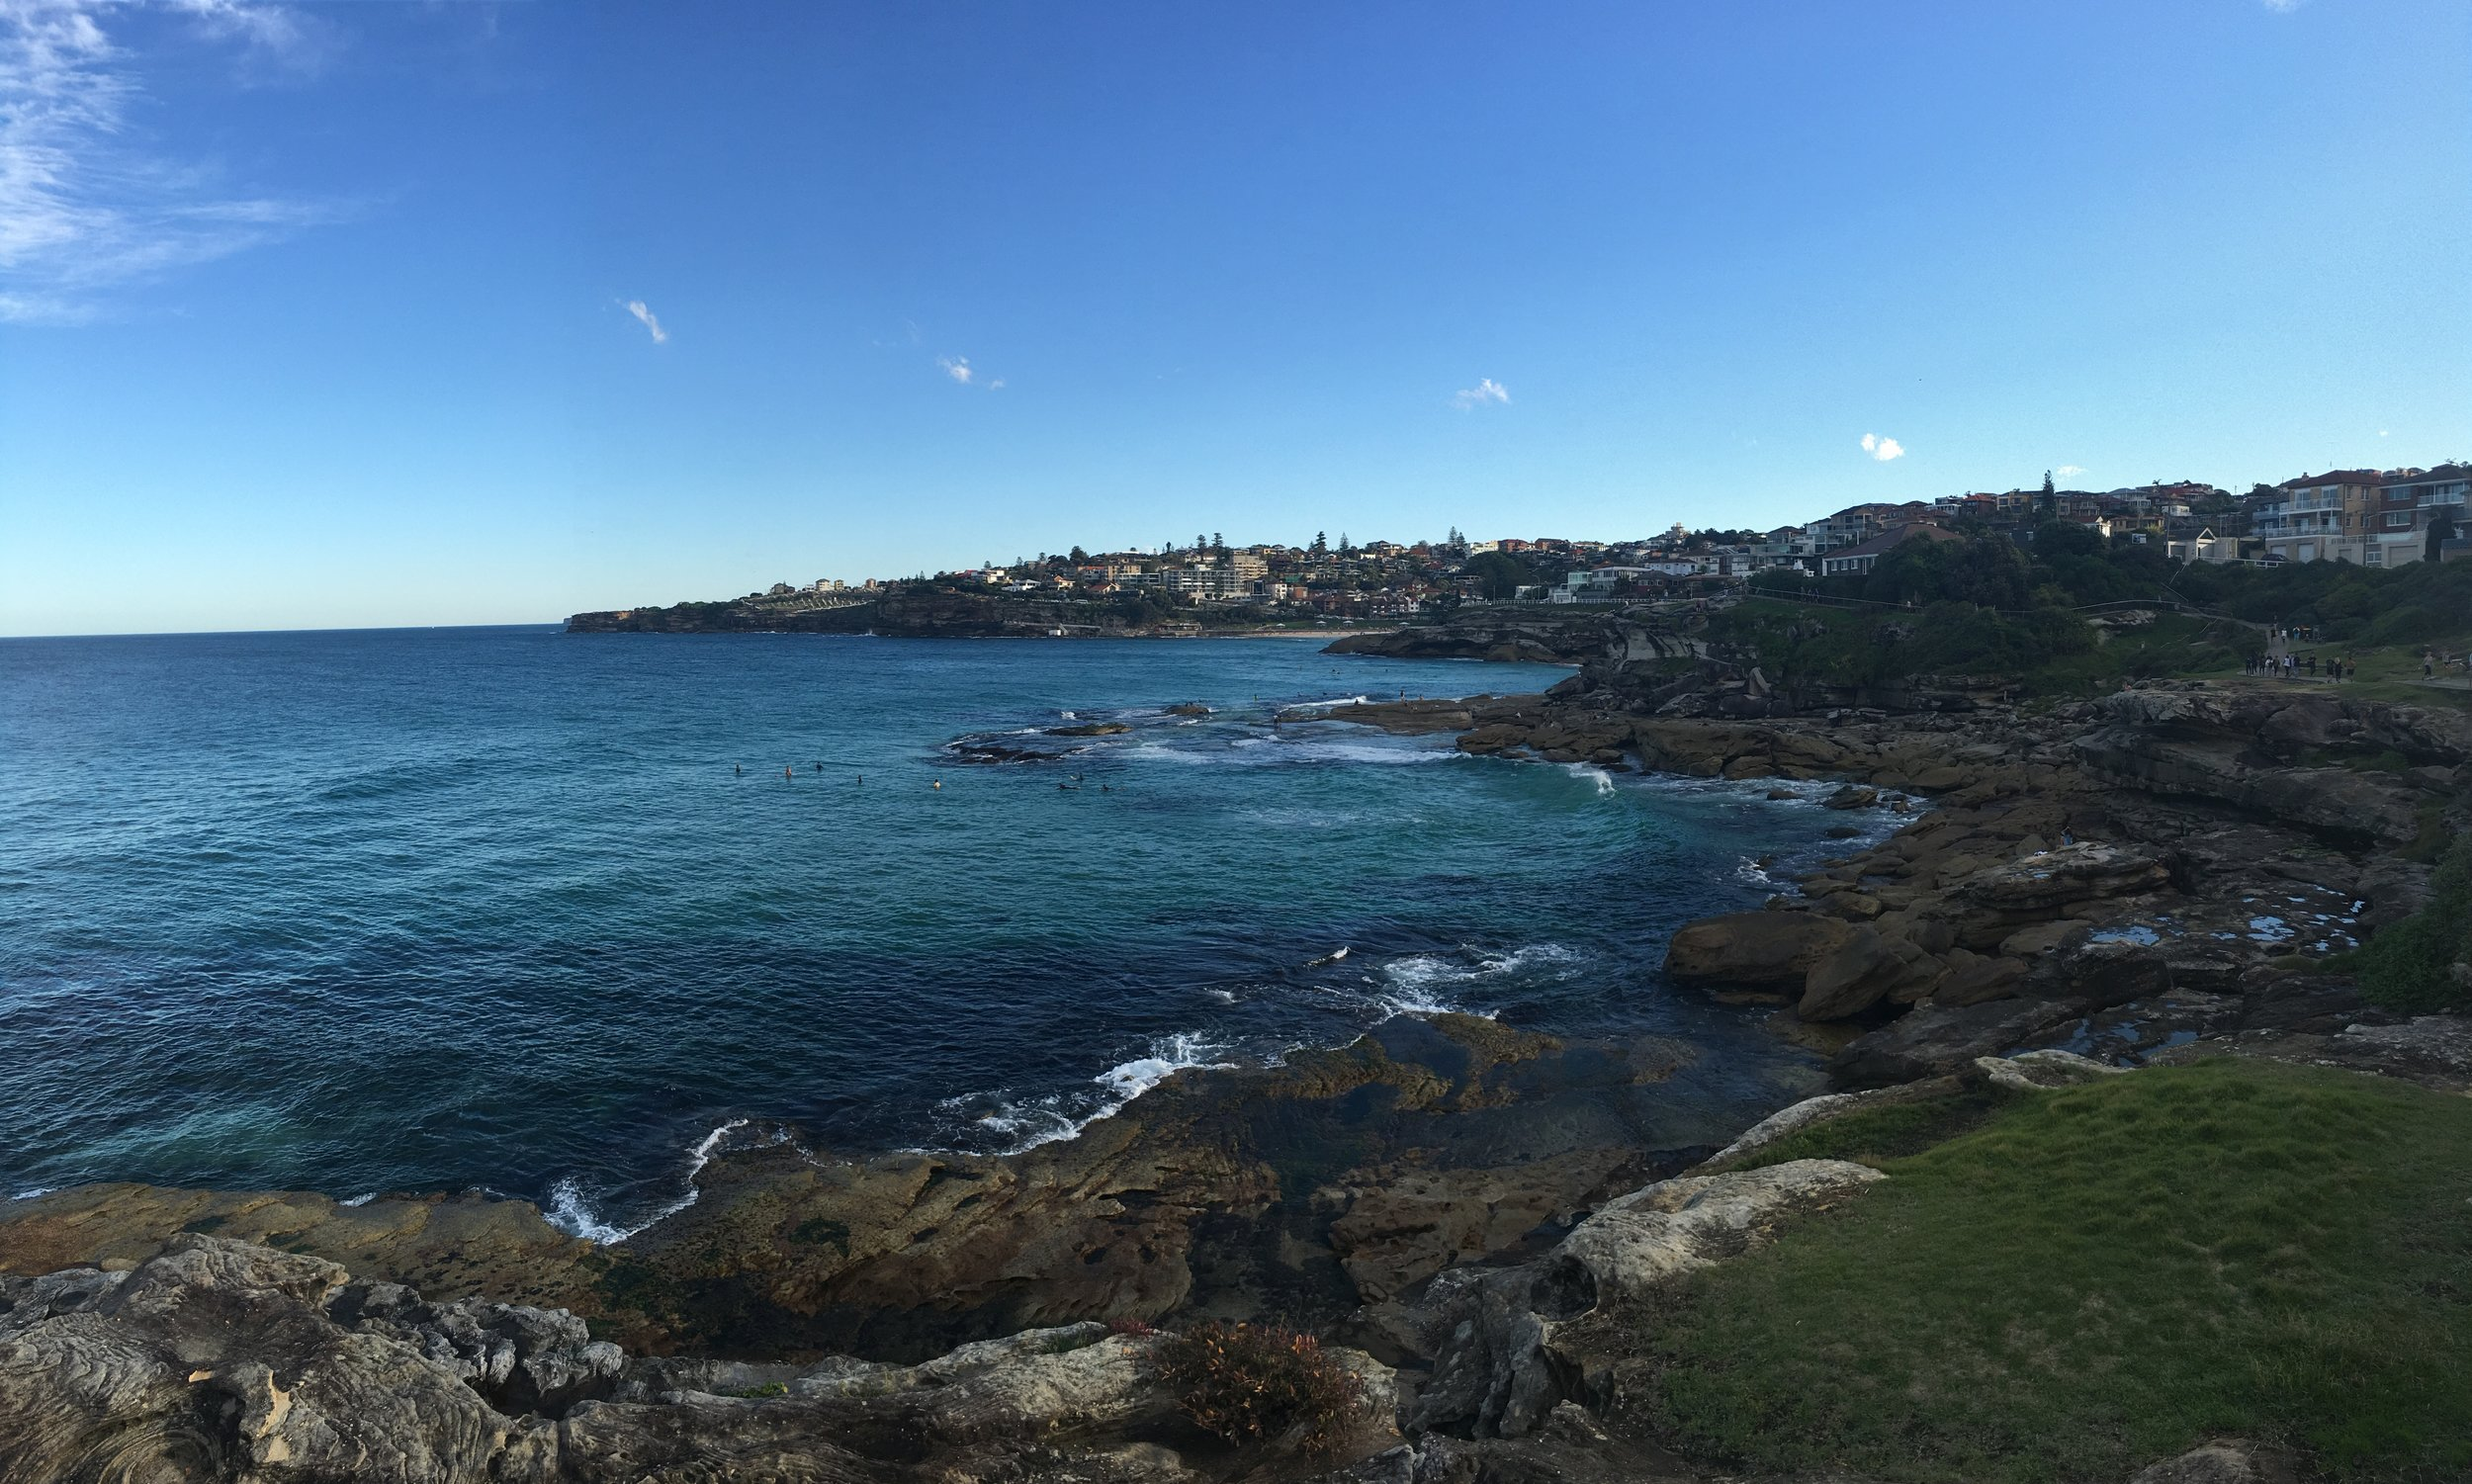 Views from the coast, living in Sydney Australia.